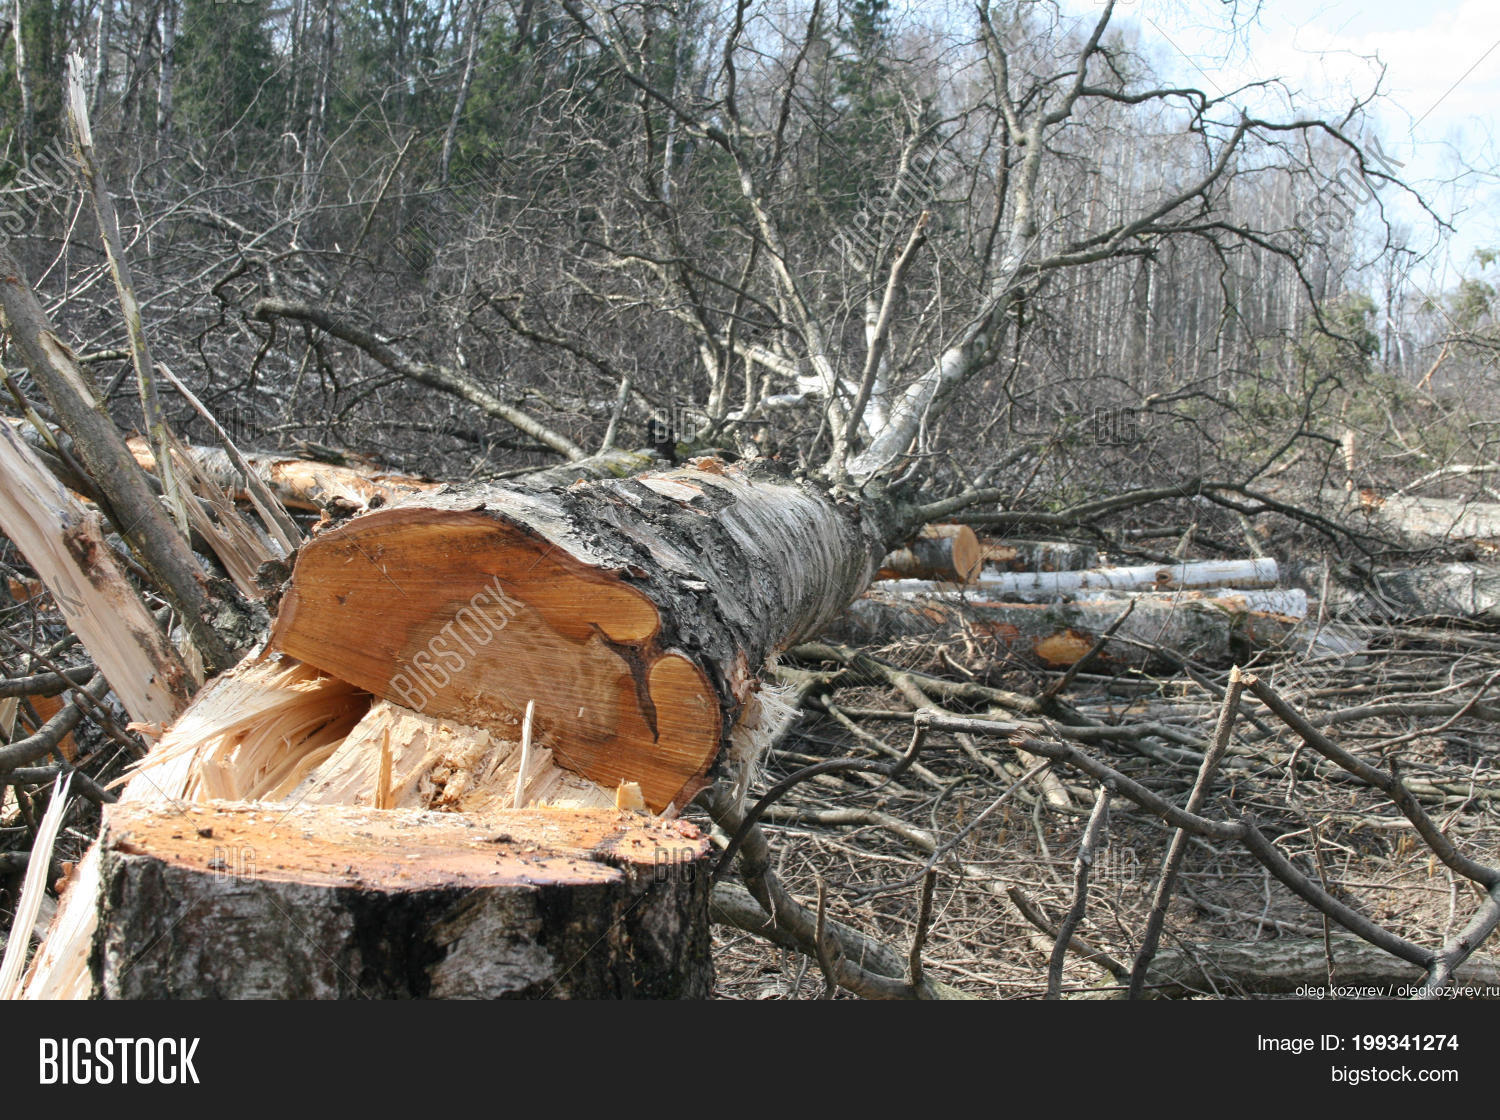 Cut Down Trees In The Forest Ecology And Protection Of Nature Logging